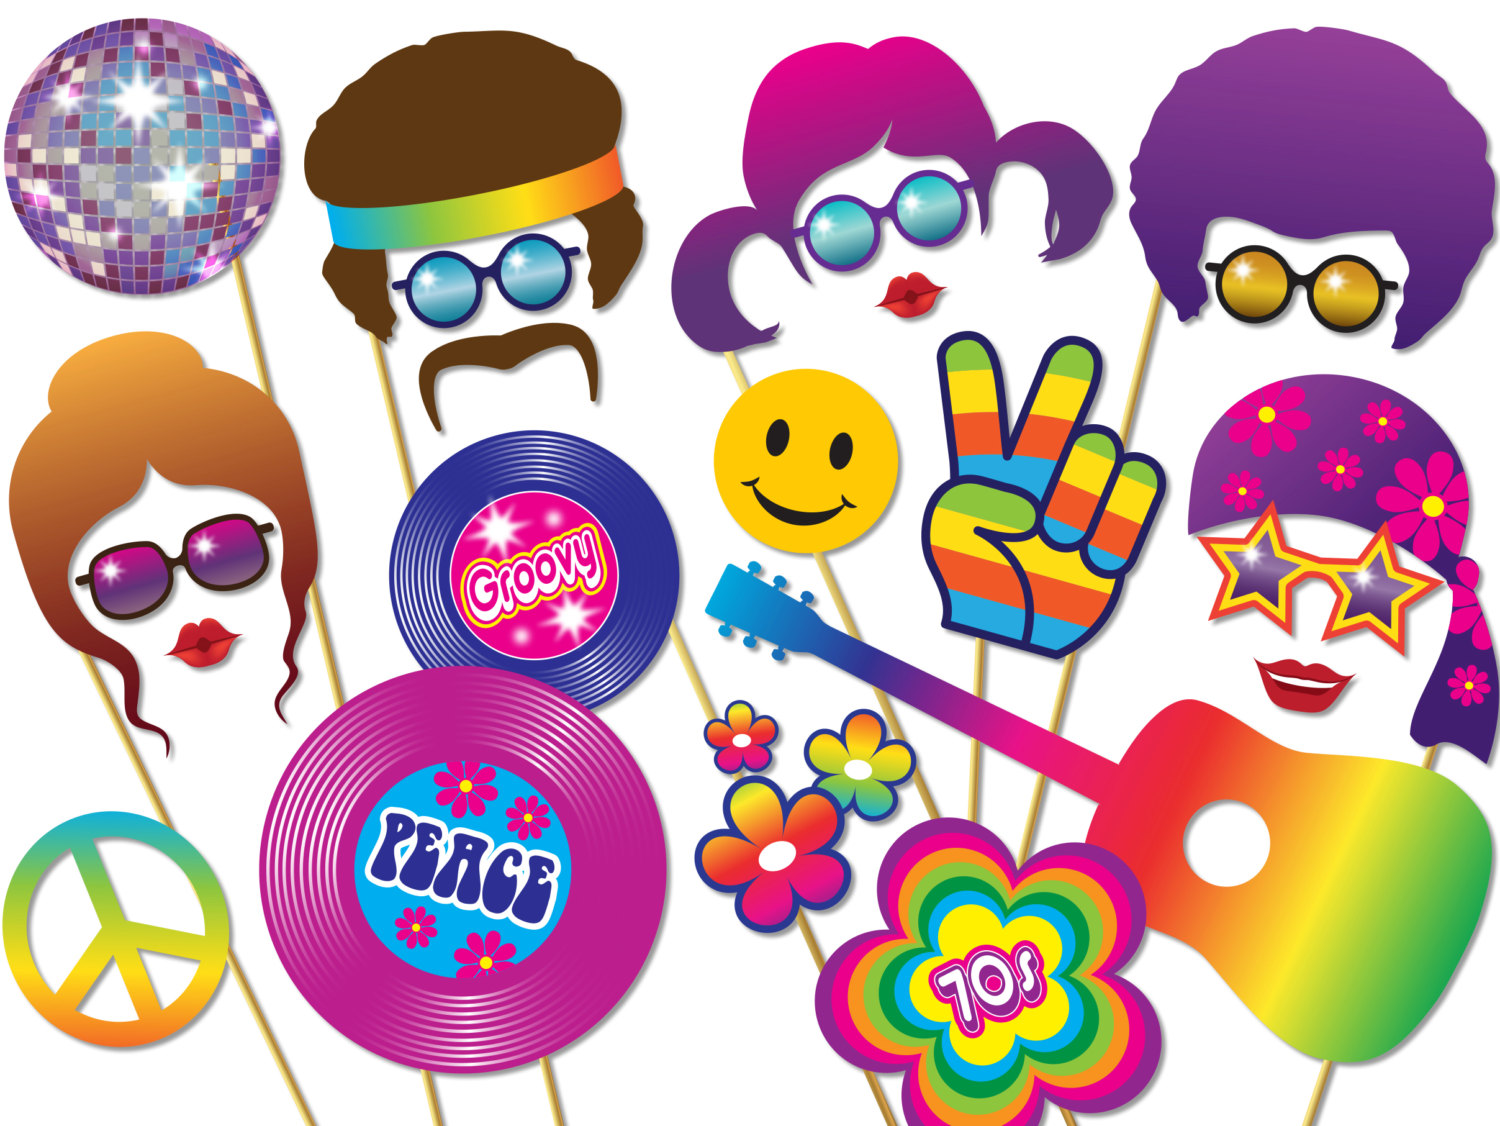 Peace clipart flower power Props Photo Download Booth Set